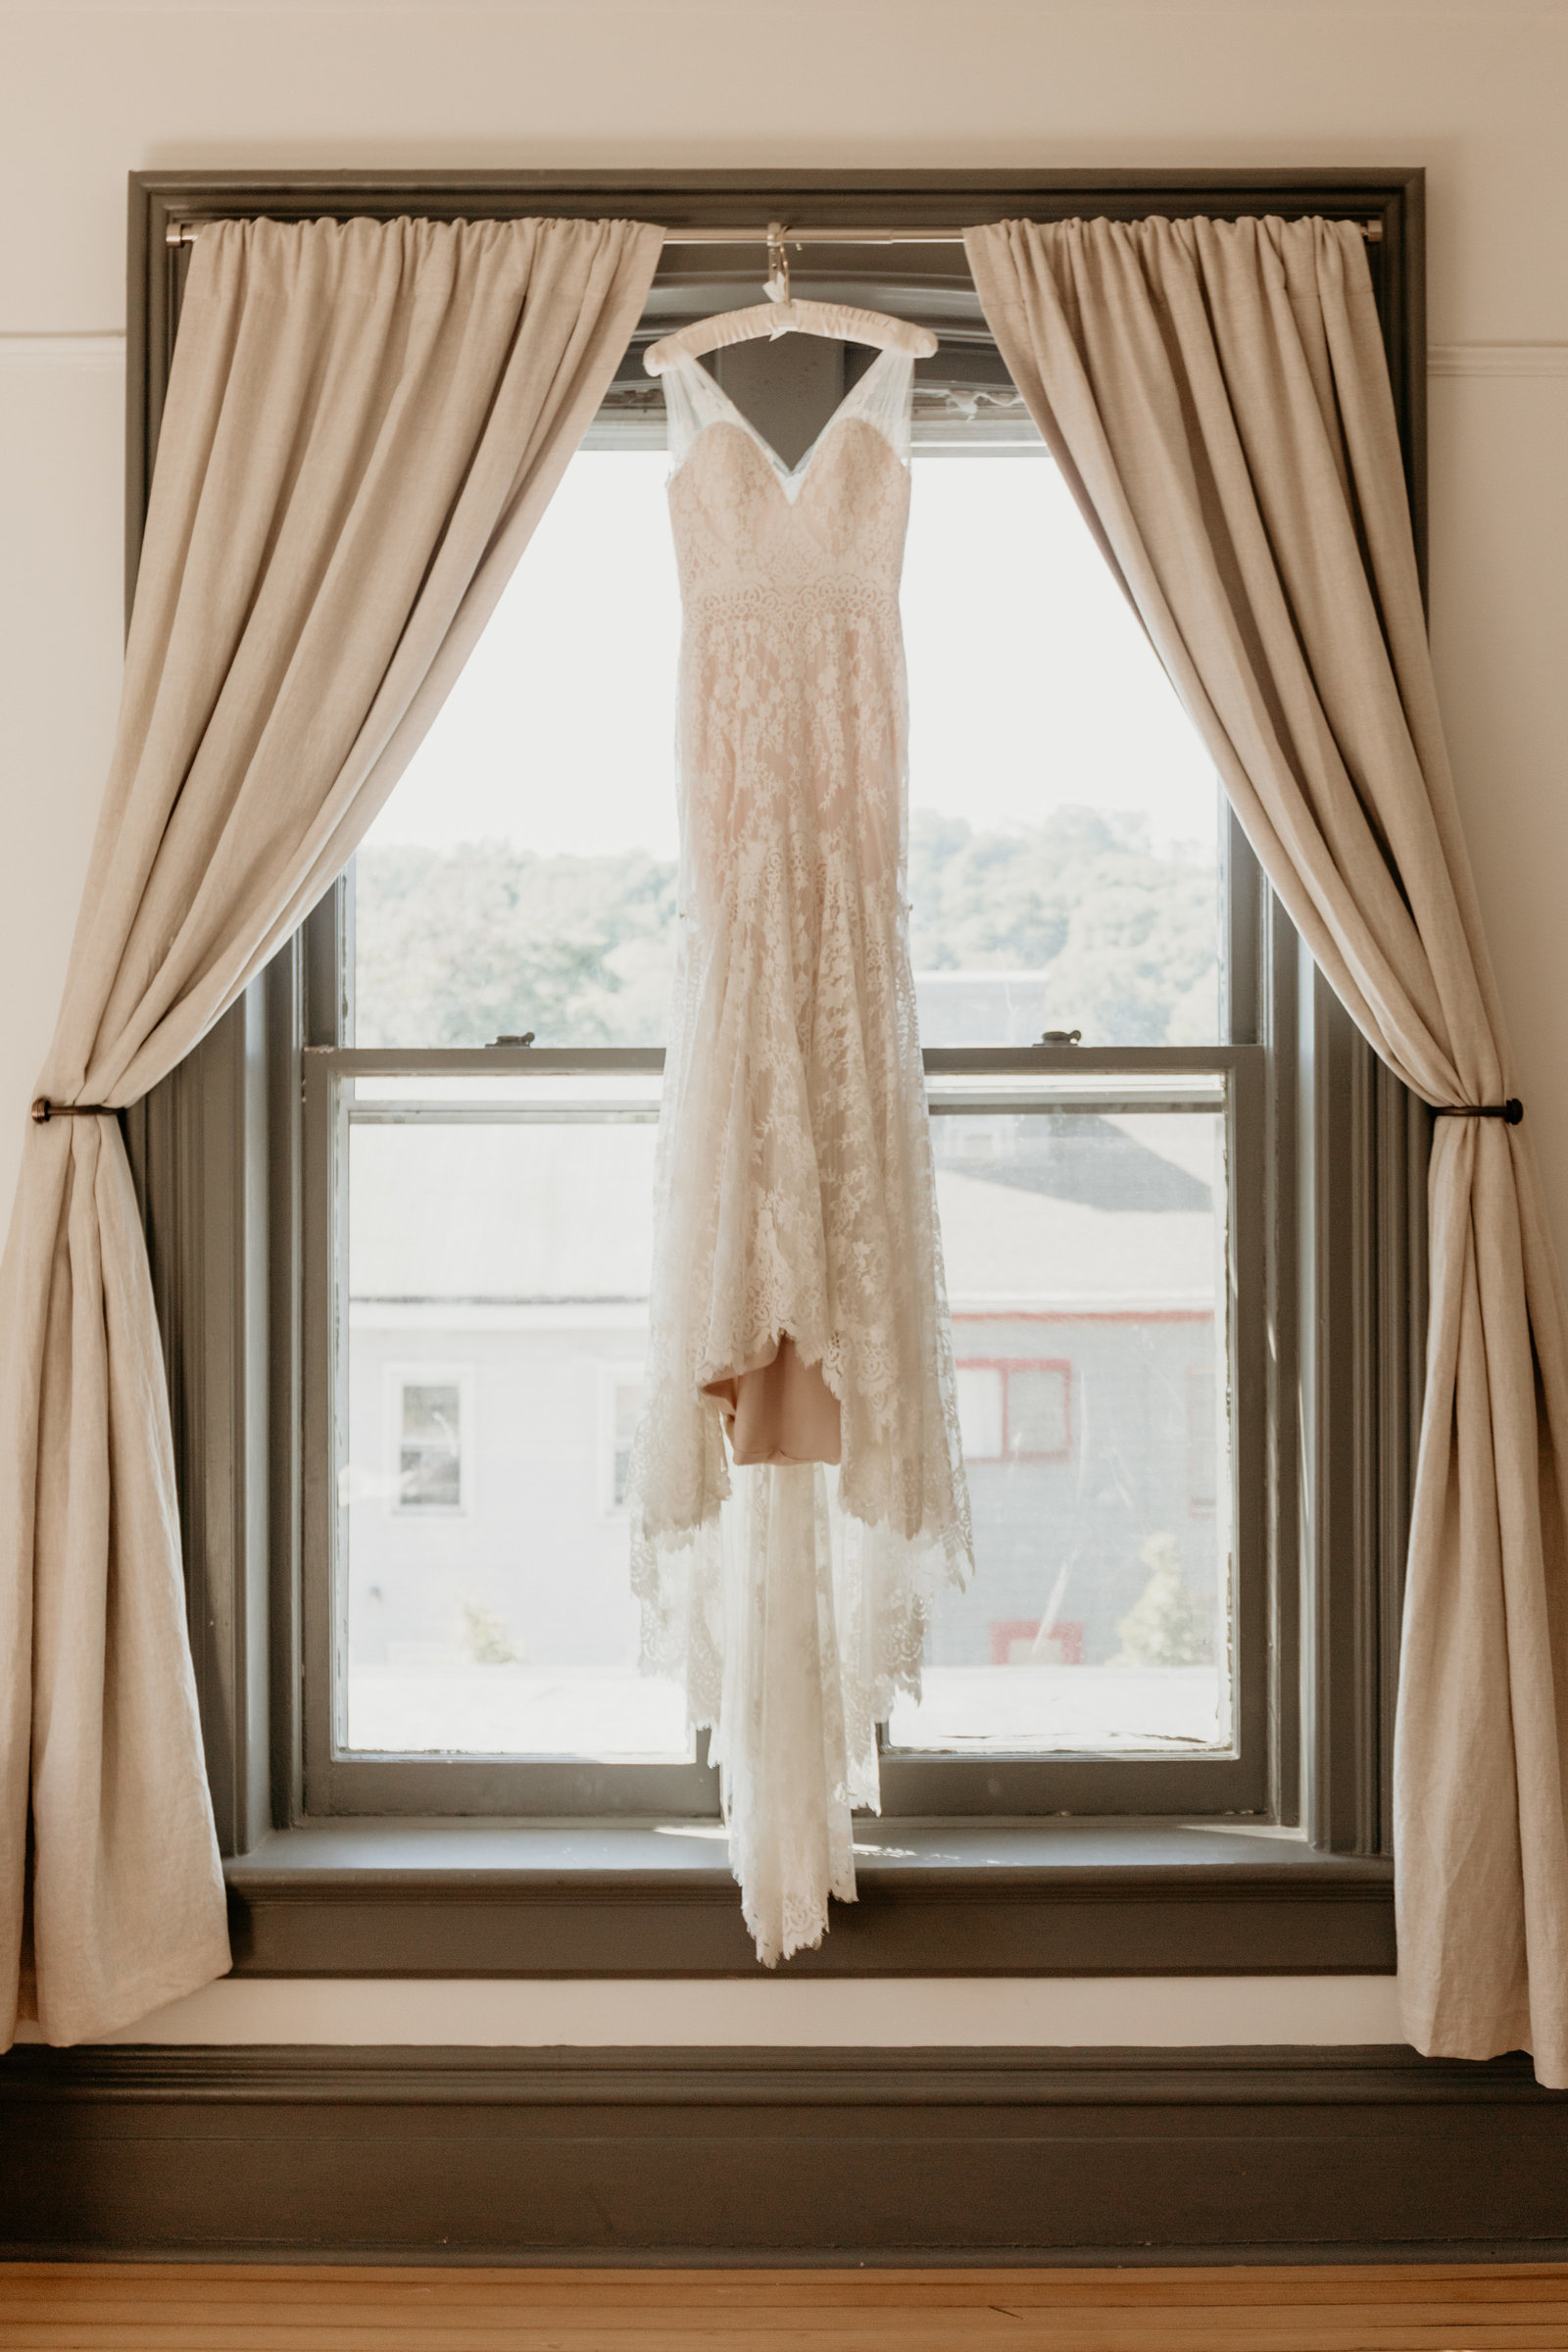 Wedding dress hanging in a natural light window.